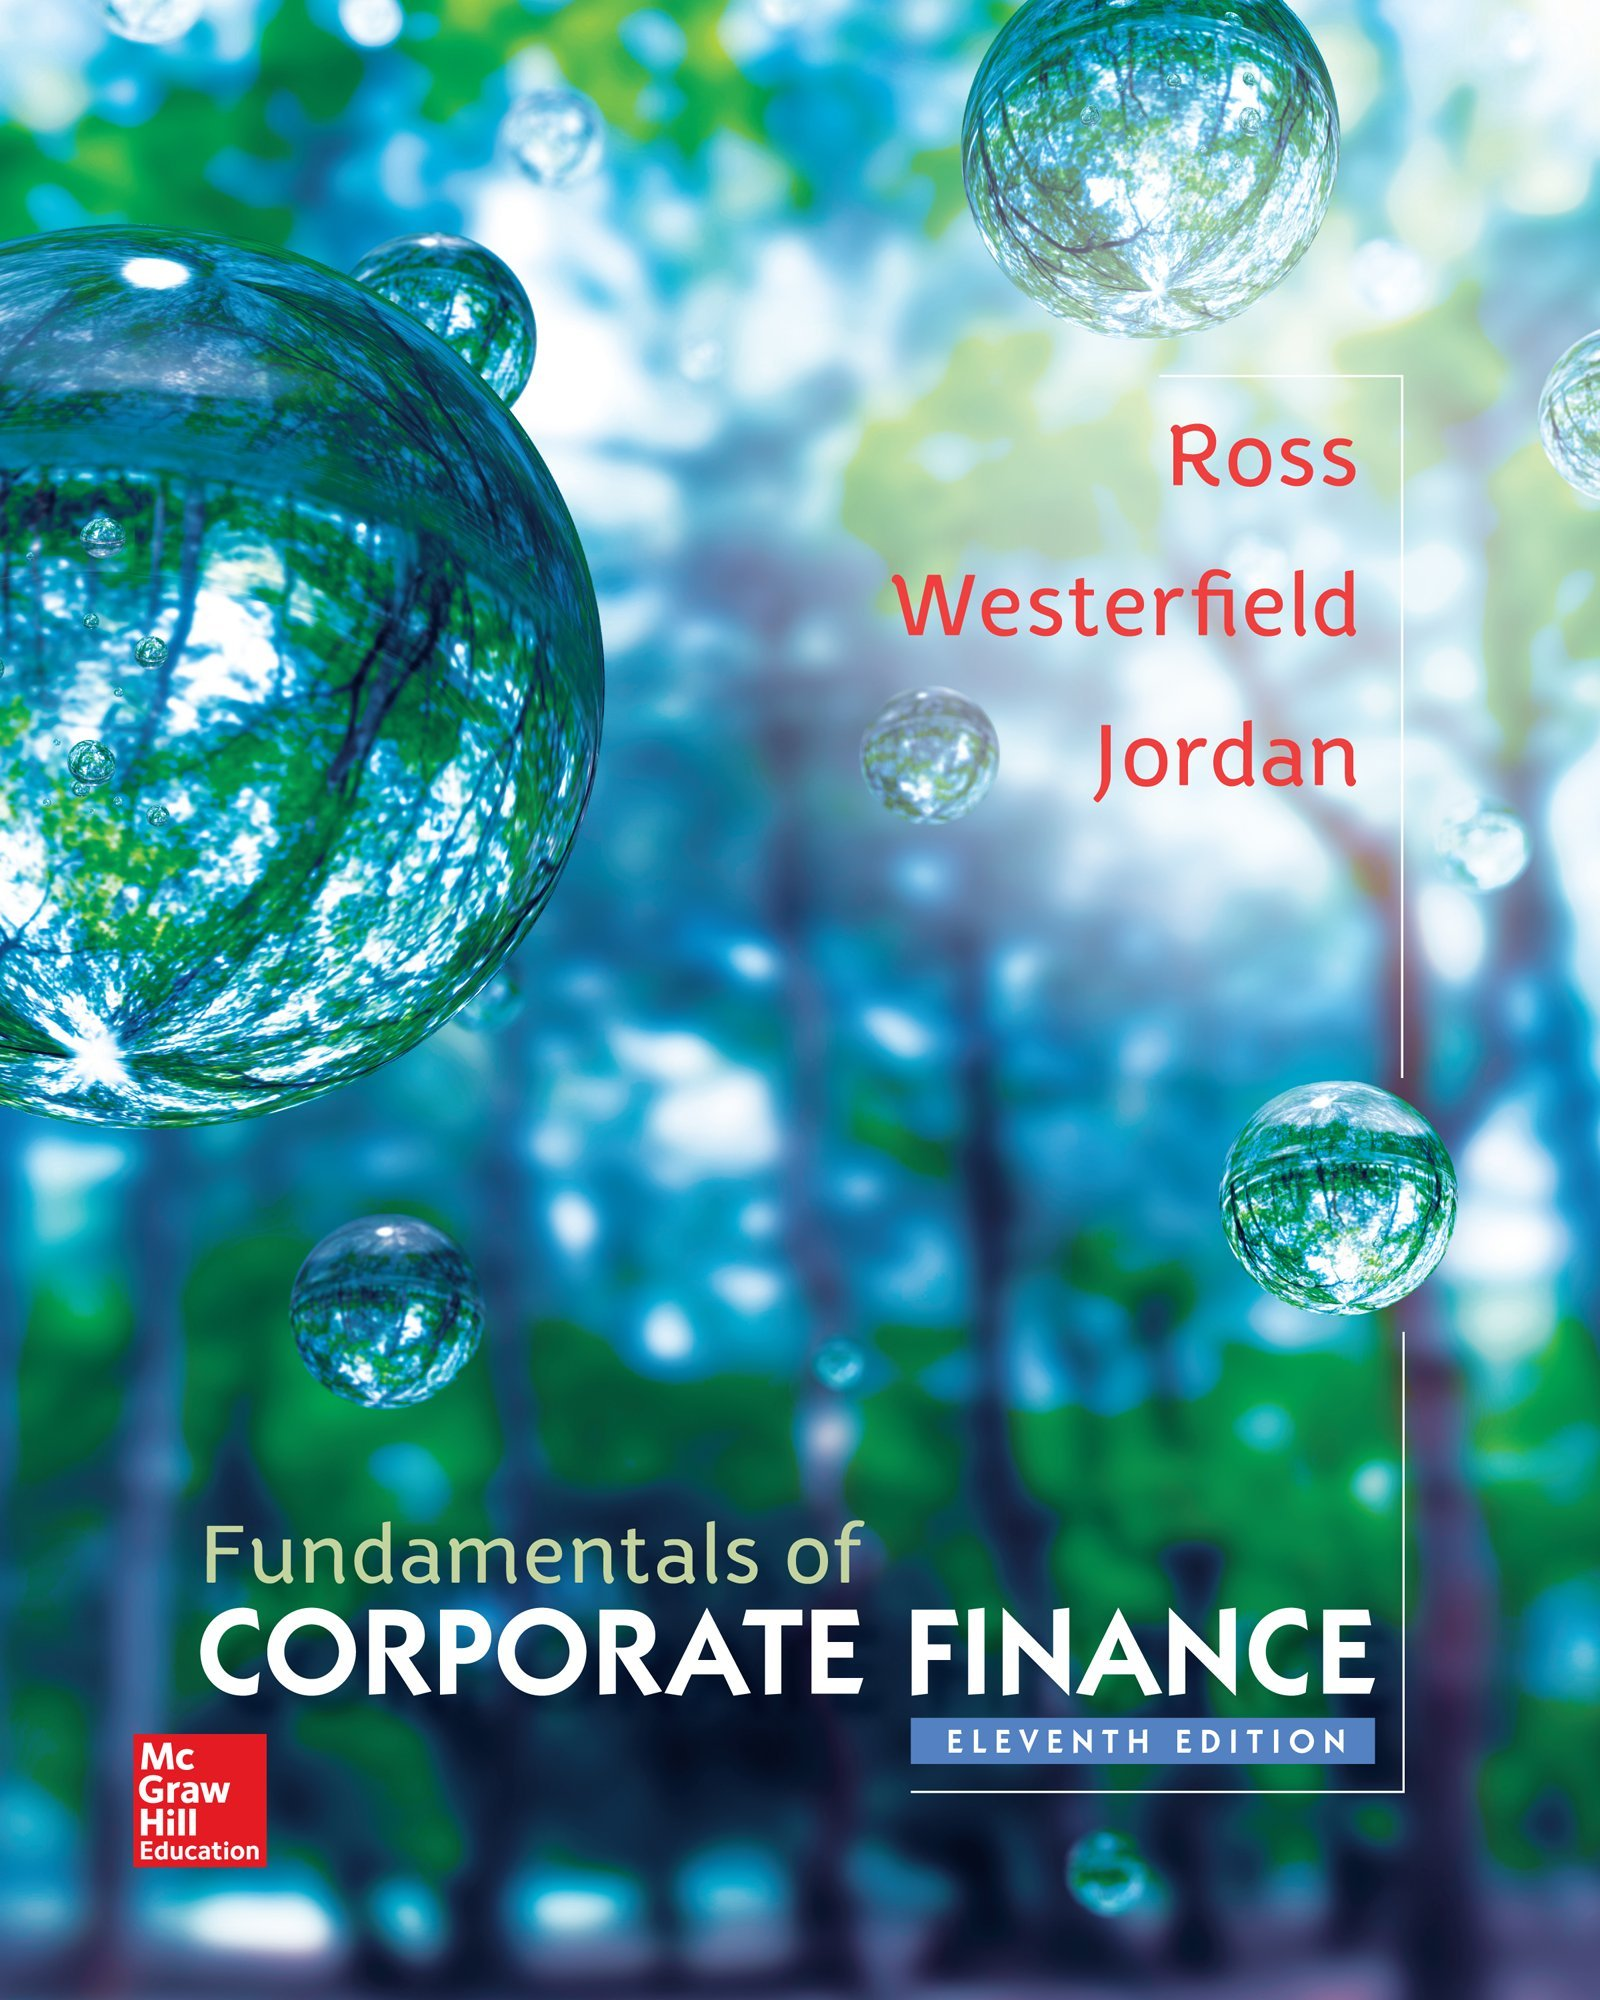 Fundamentals of Corporate Finance 11th Edition By Ross, Westerfield, Jordan - Solution Manual